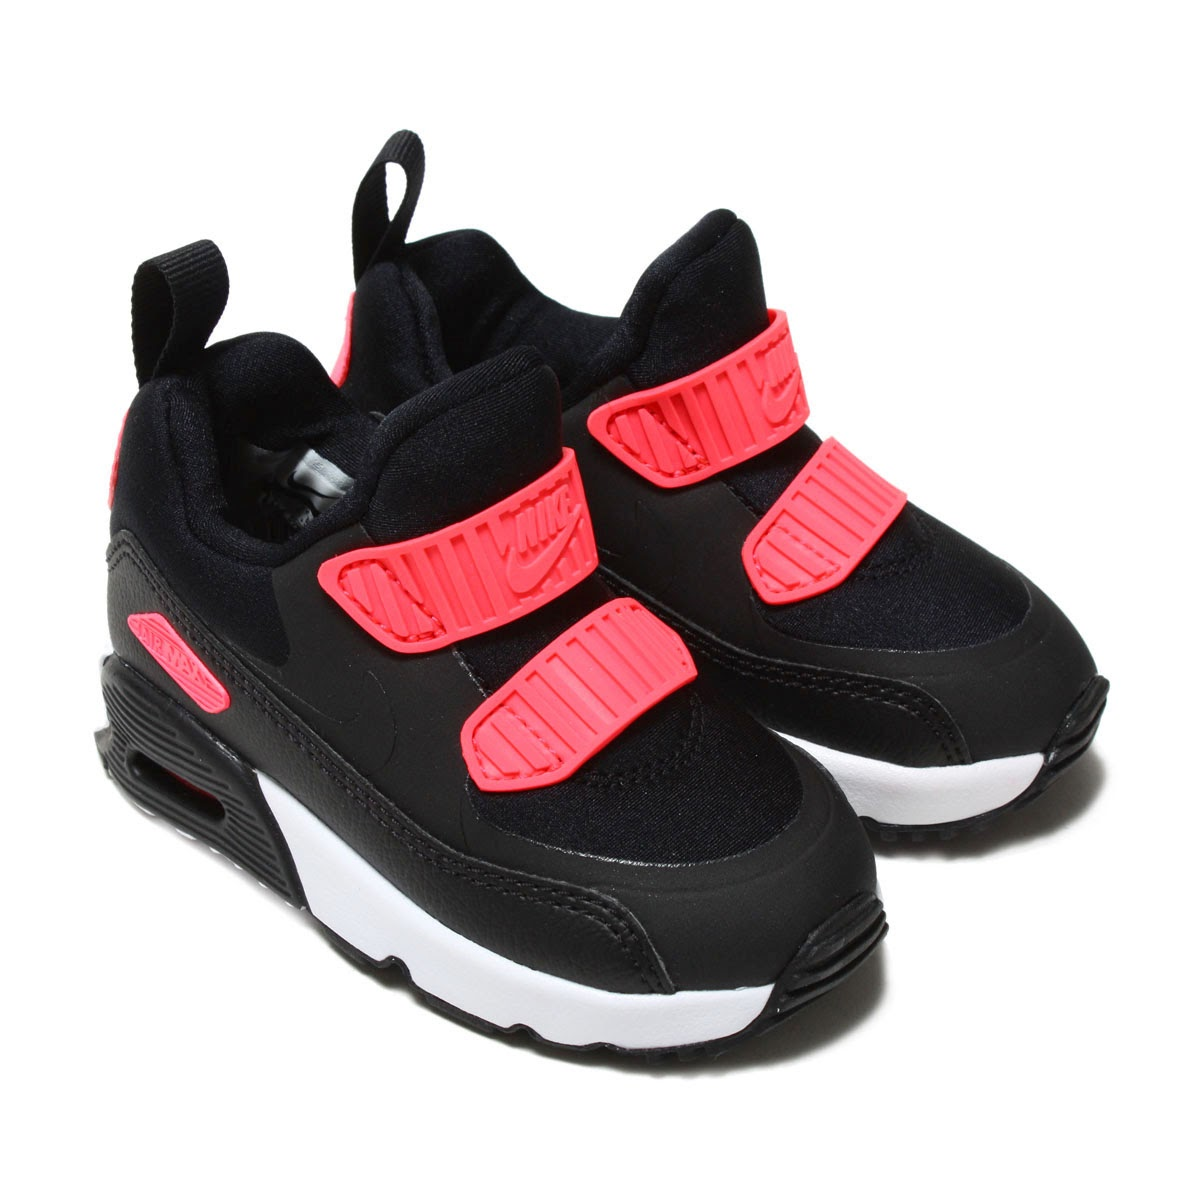 sports shoes b856c ee588 The design that Kie Ney AMAX Thailand knee 90 TD put classic style of the  original model and new クッショニングシステム together. I adopt lightness and soft ...